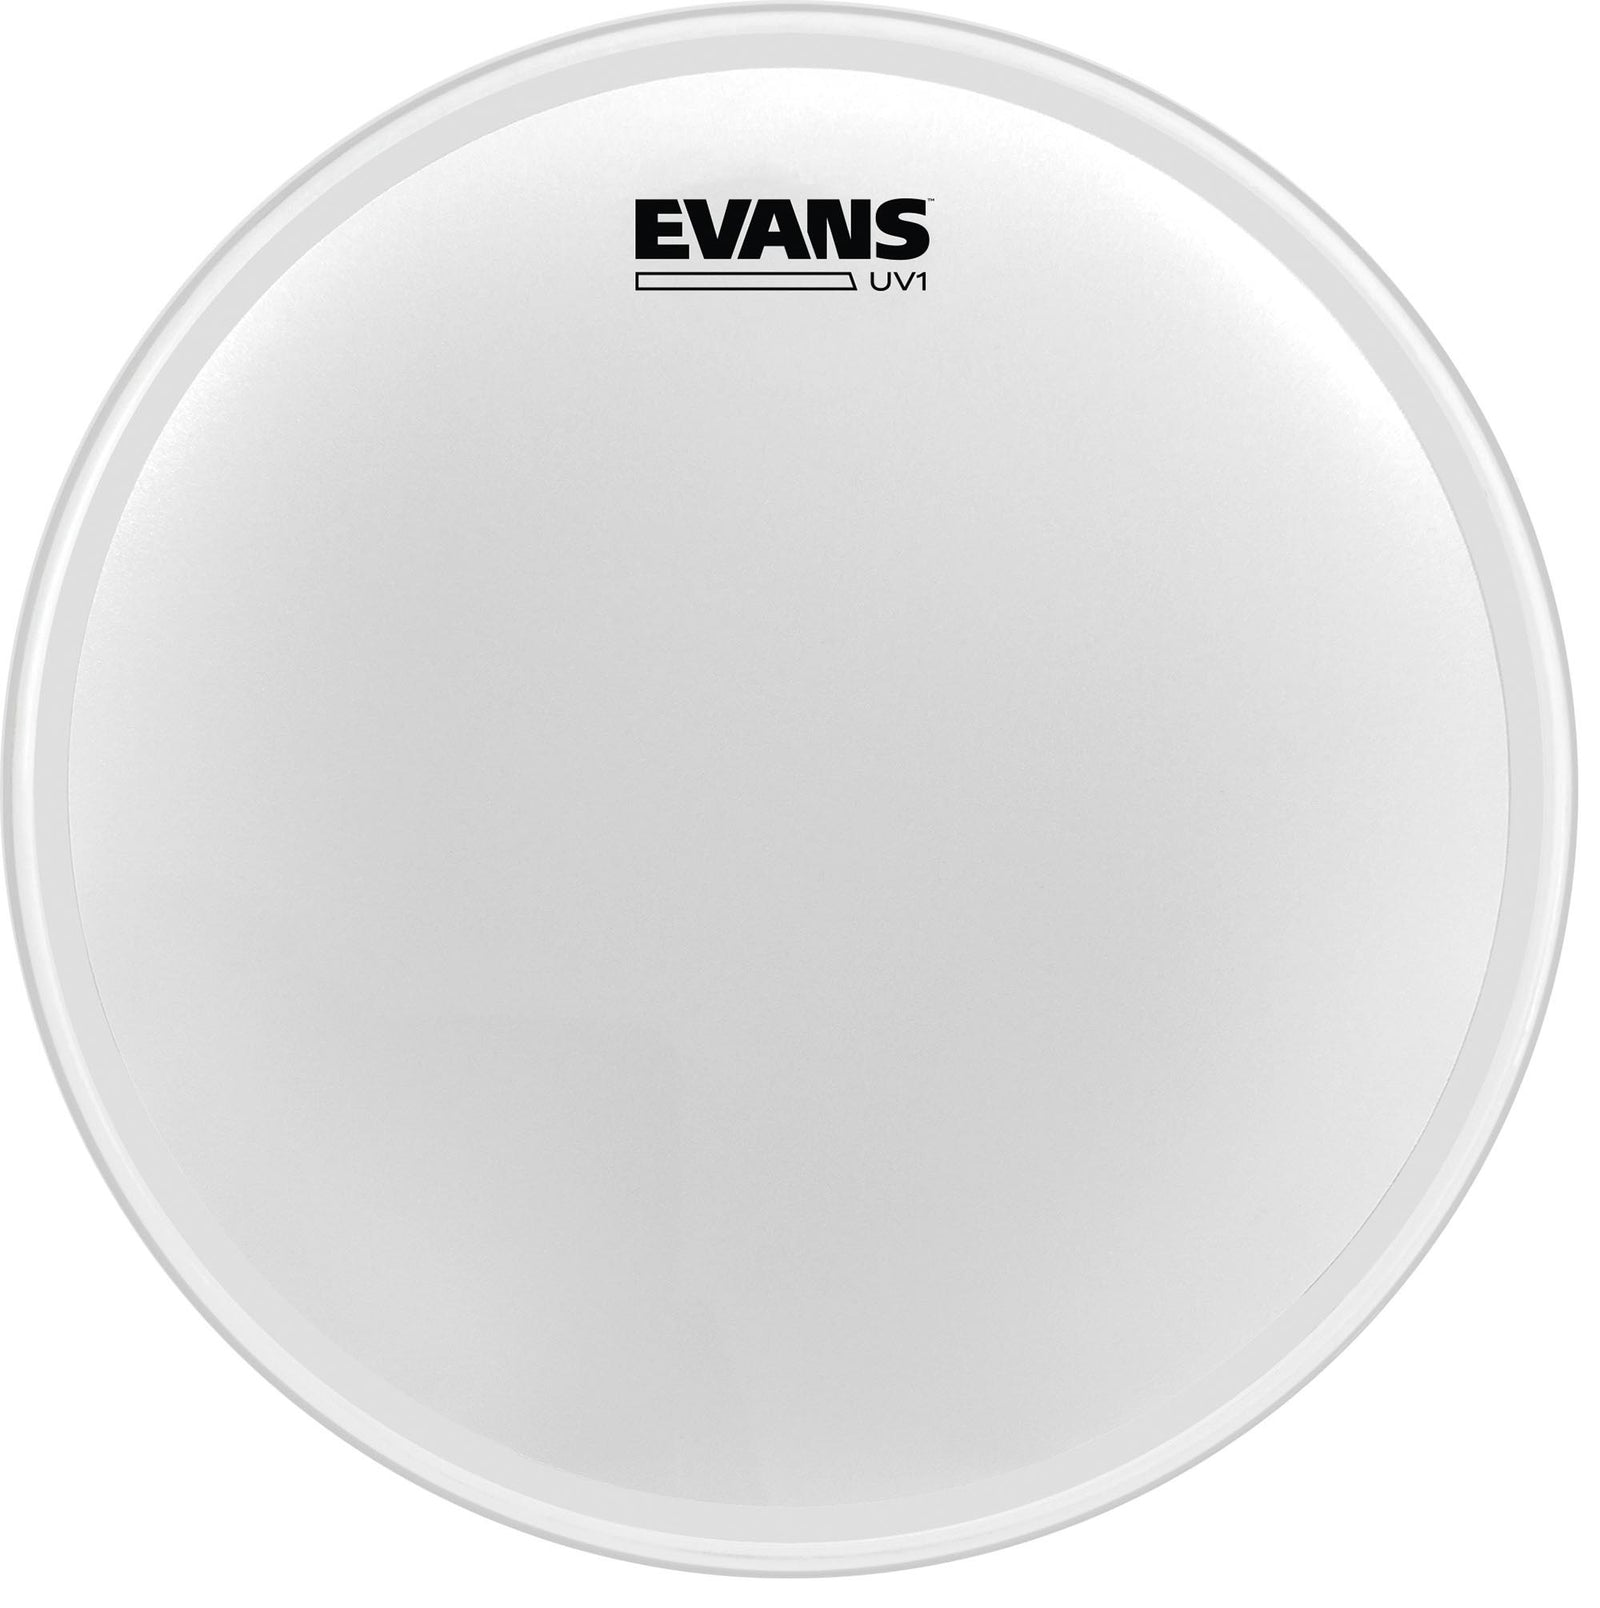 "Evans 18"" UV1 Bass Head"